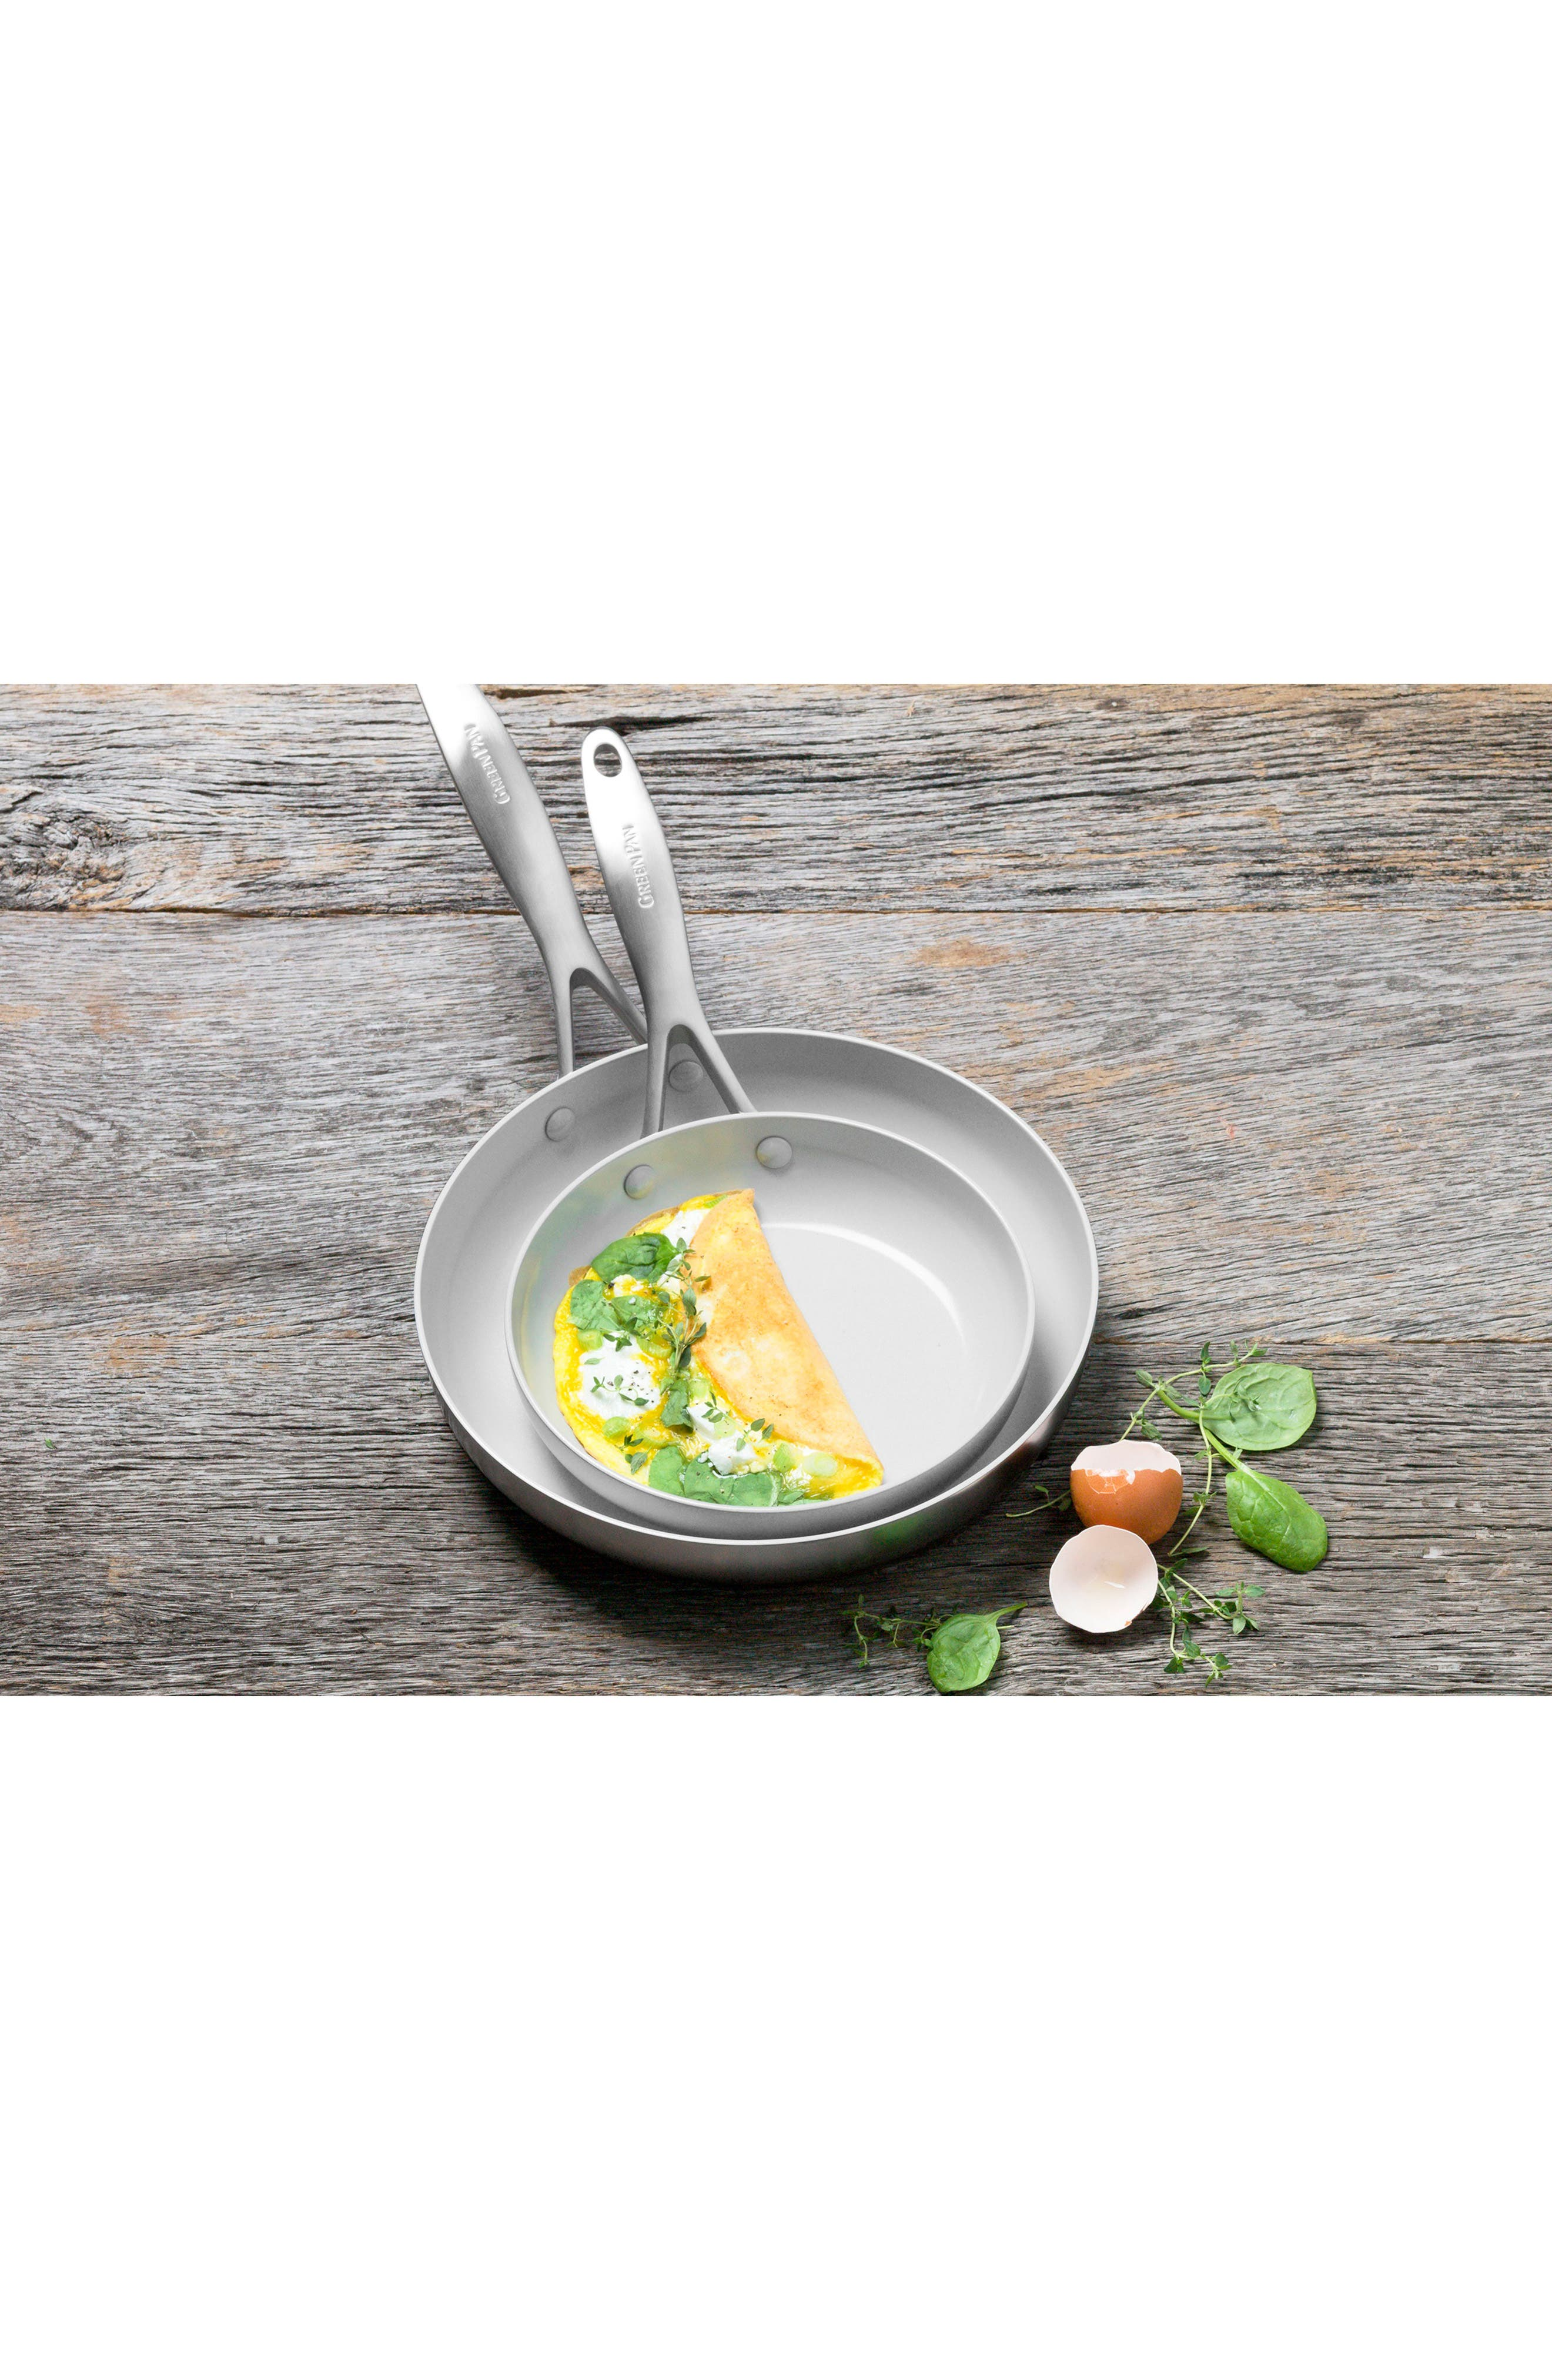 Venice Pro 8-Inch & 10-Inch Multilayer Stainless Steel Ceramic Nonstick Frying Pan Set,                             Alternate thumbnail 3, color,                             Stainless Steel